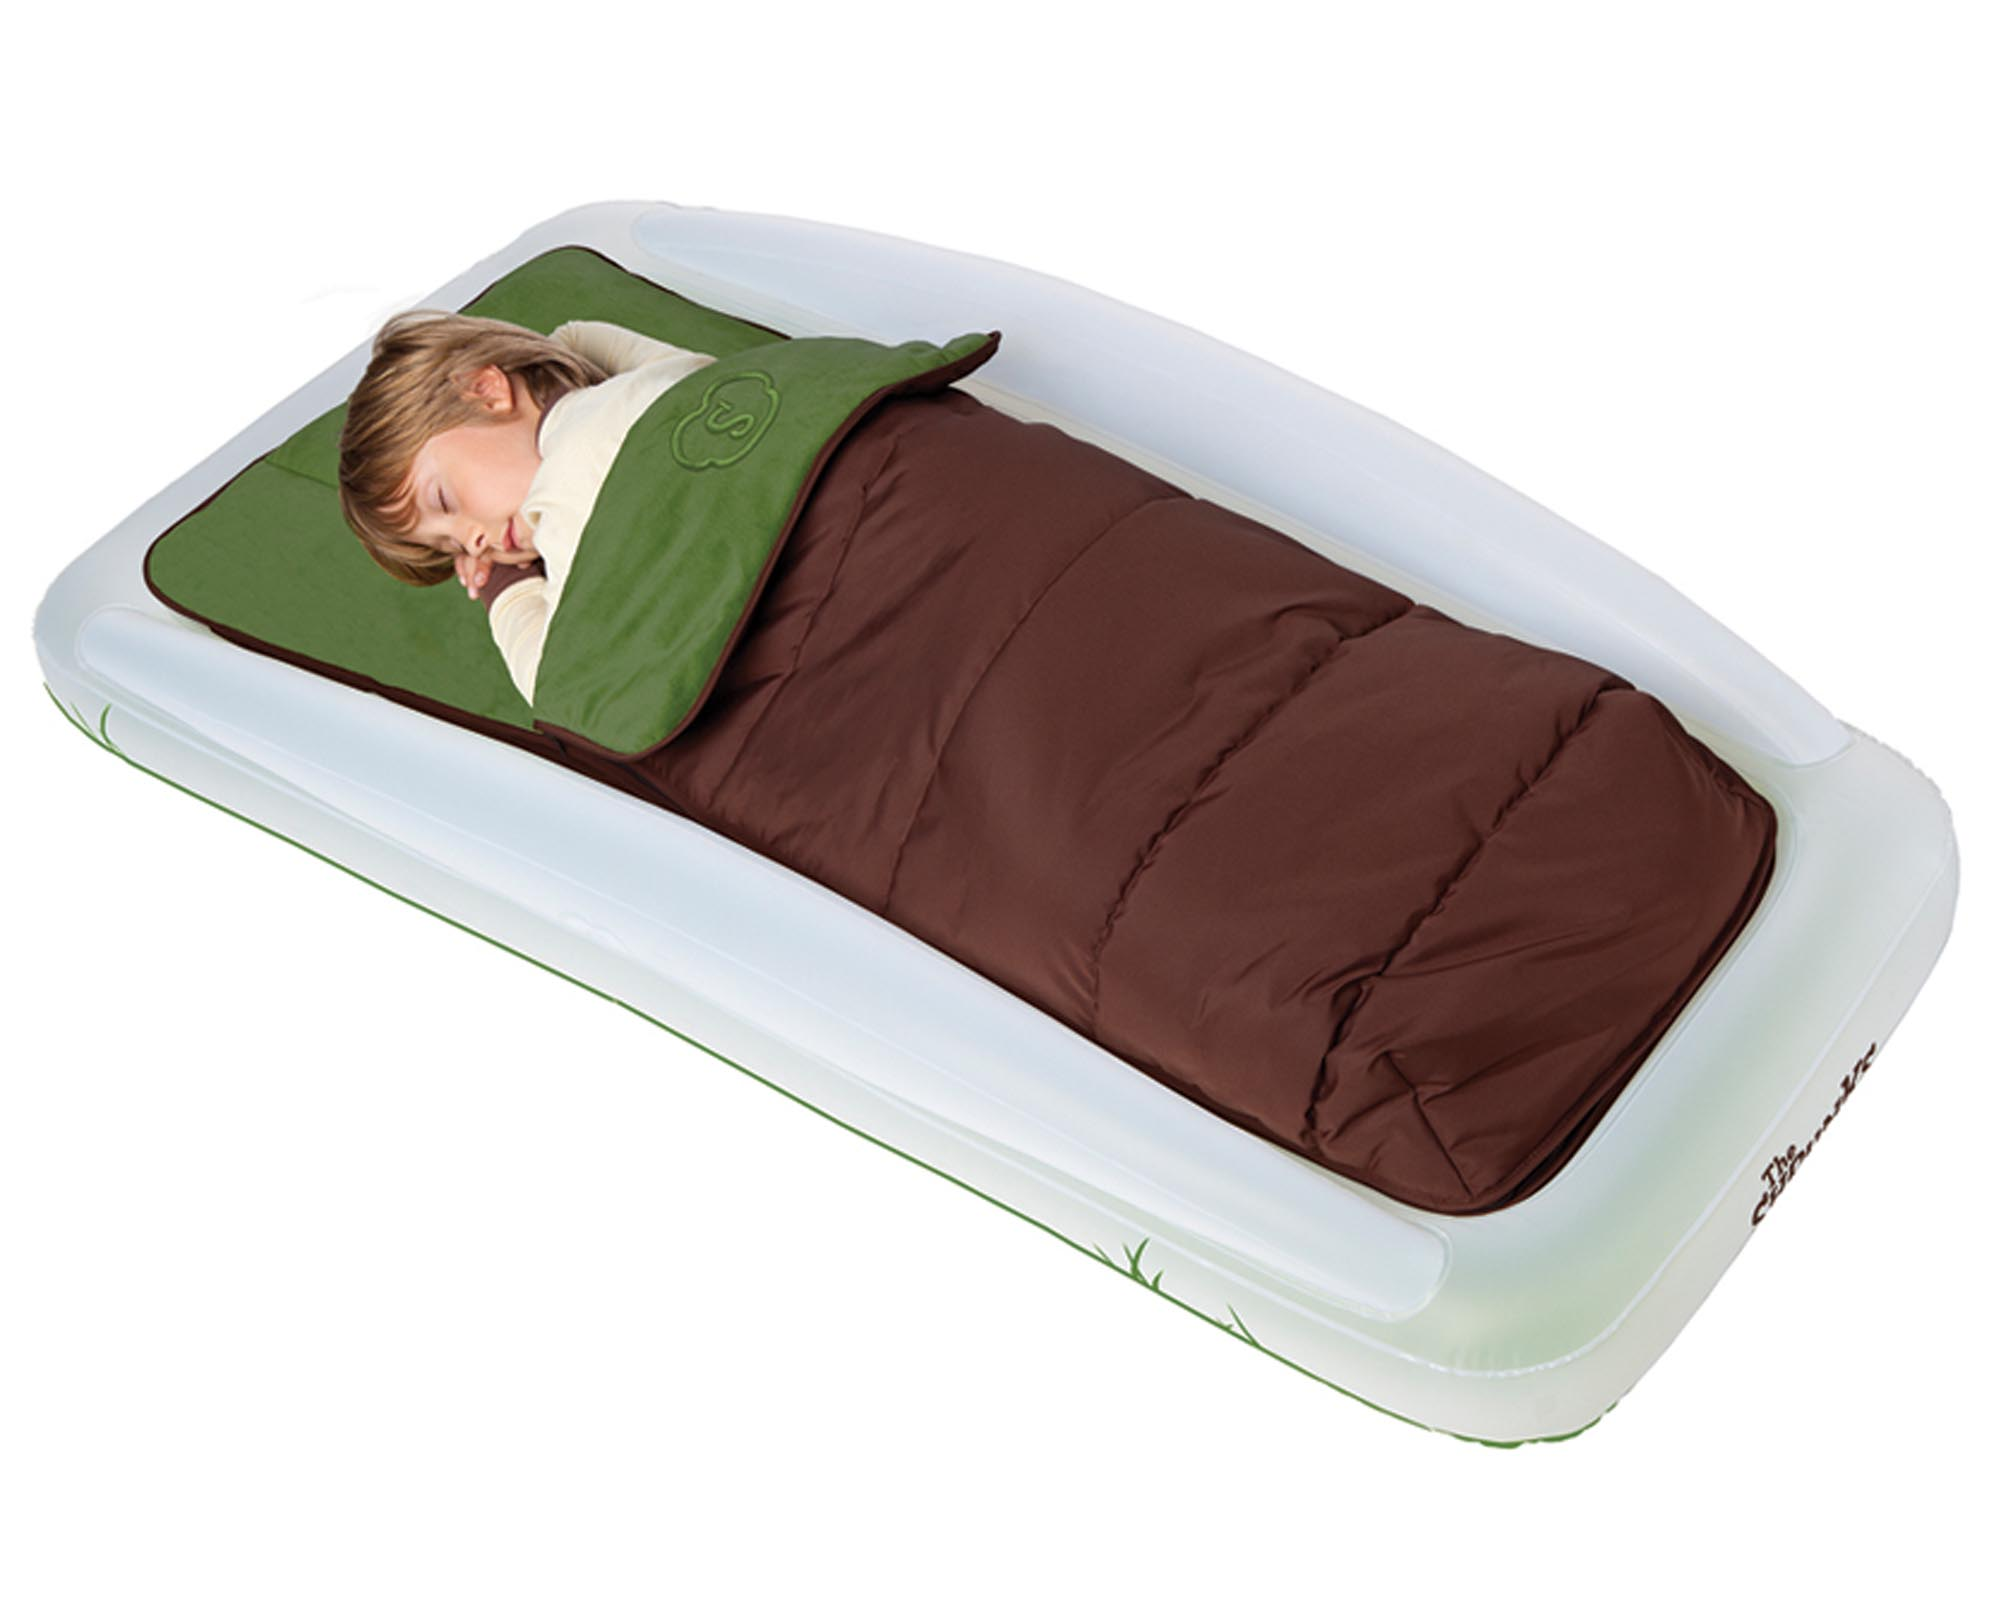 Shrunks Tuckaire Toddler Outdoor Travel Bed w/ Rails & Sleeping Bag